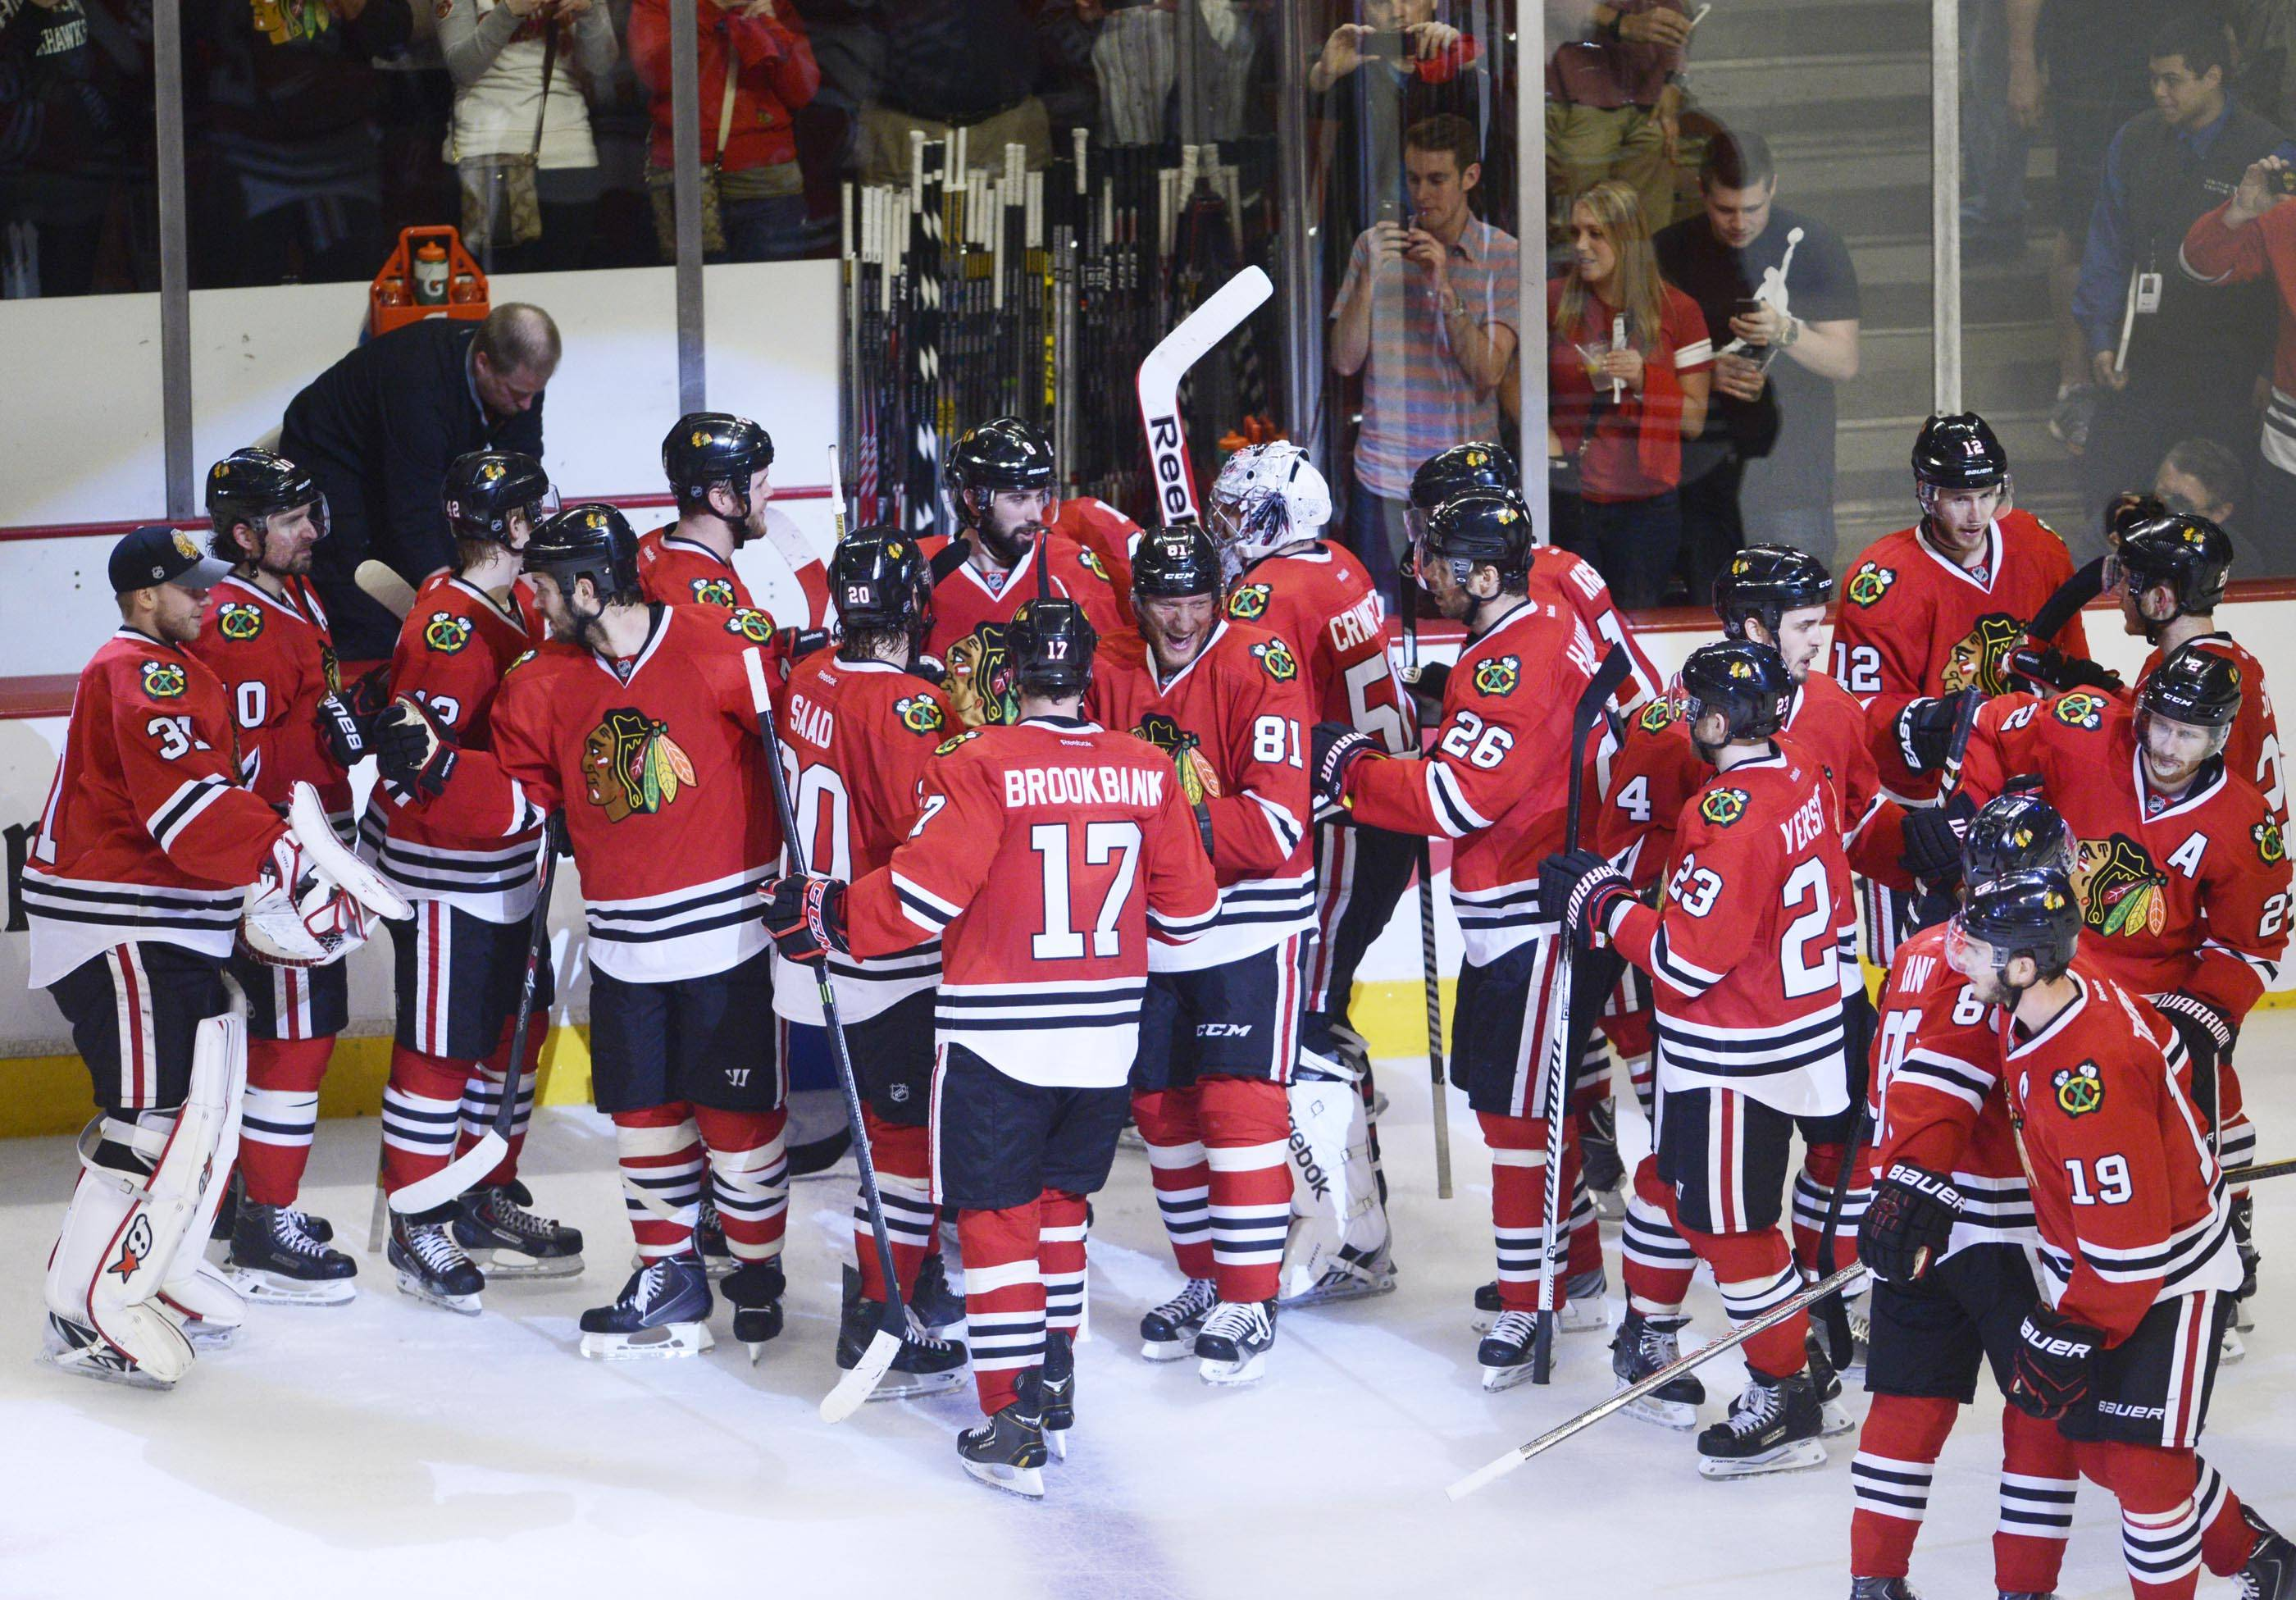 The Blackhawks gather around goalie Corey Crawford after their 2-1 win over the Minnesota Wild at United Center.